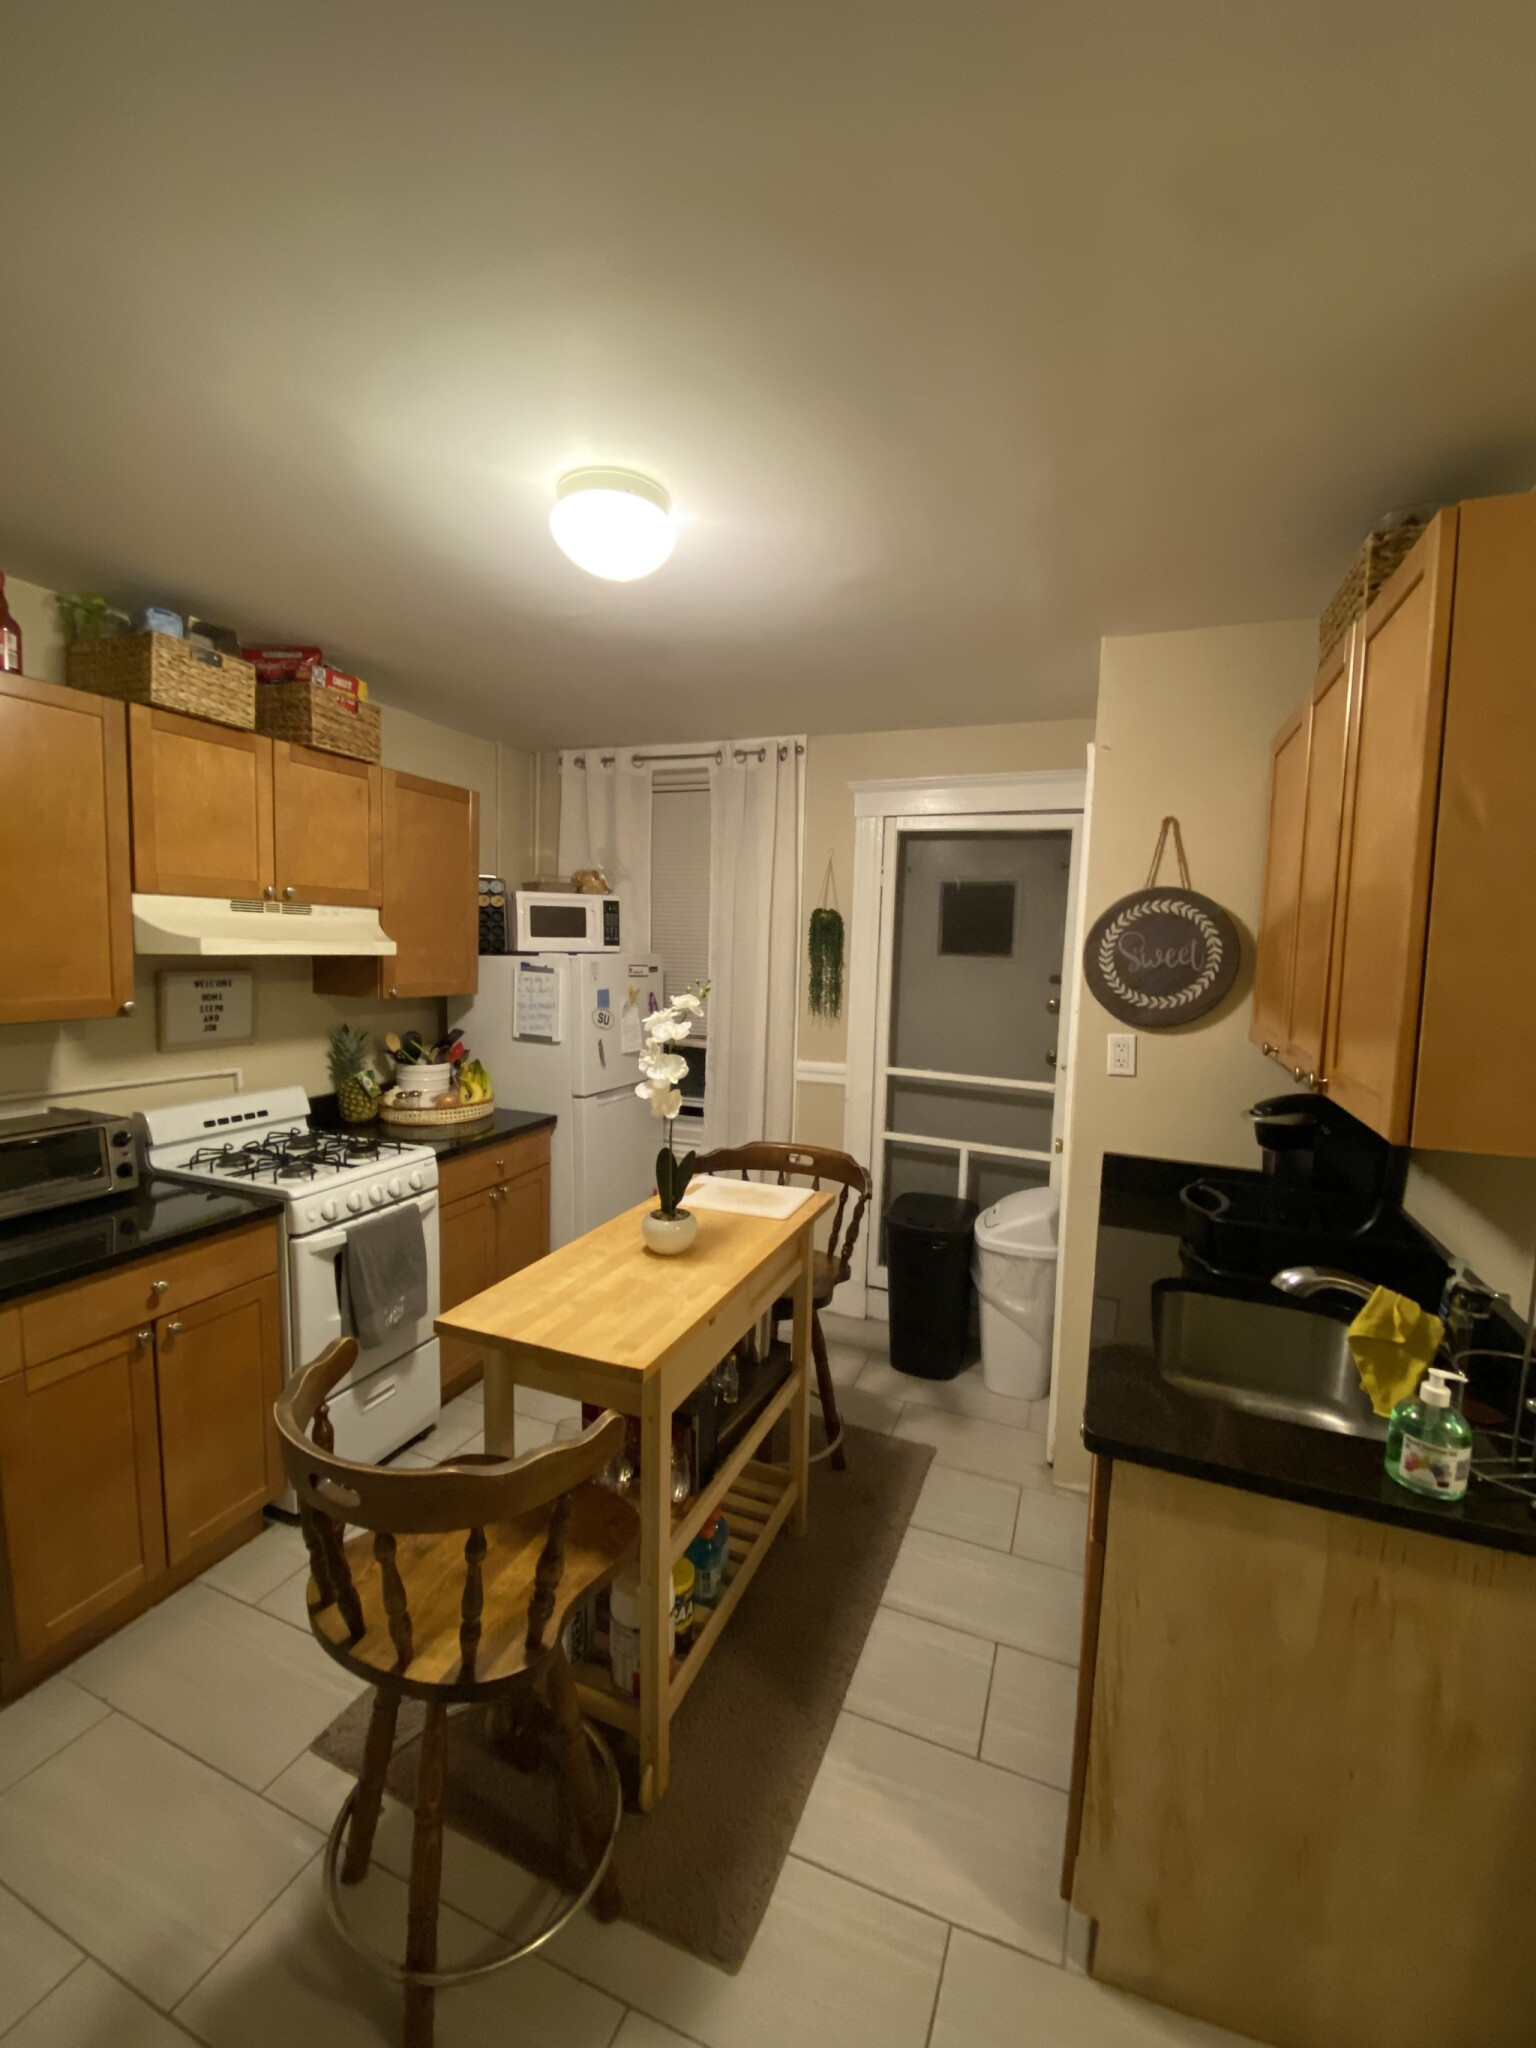 1.8 Beds, 1 Bath apartment in Boston, North End for $2,300